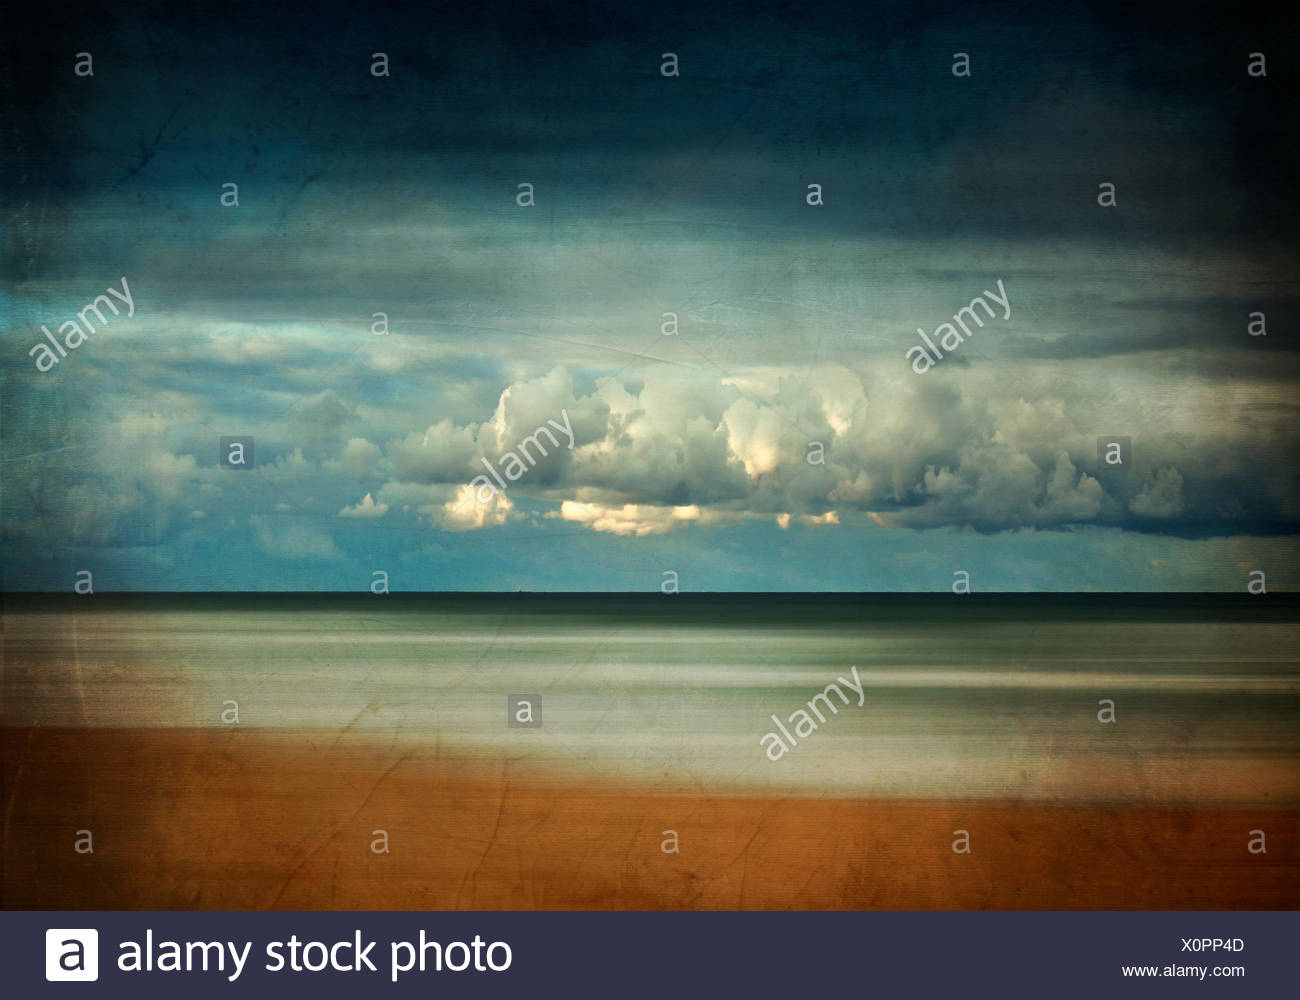 France, contis-Plage, beach in the morning - Stock Image